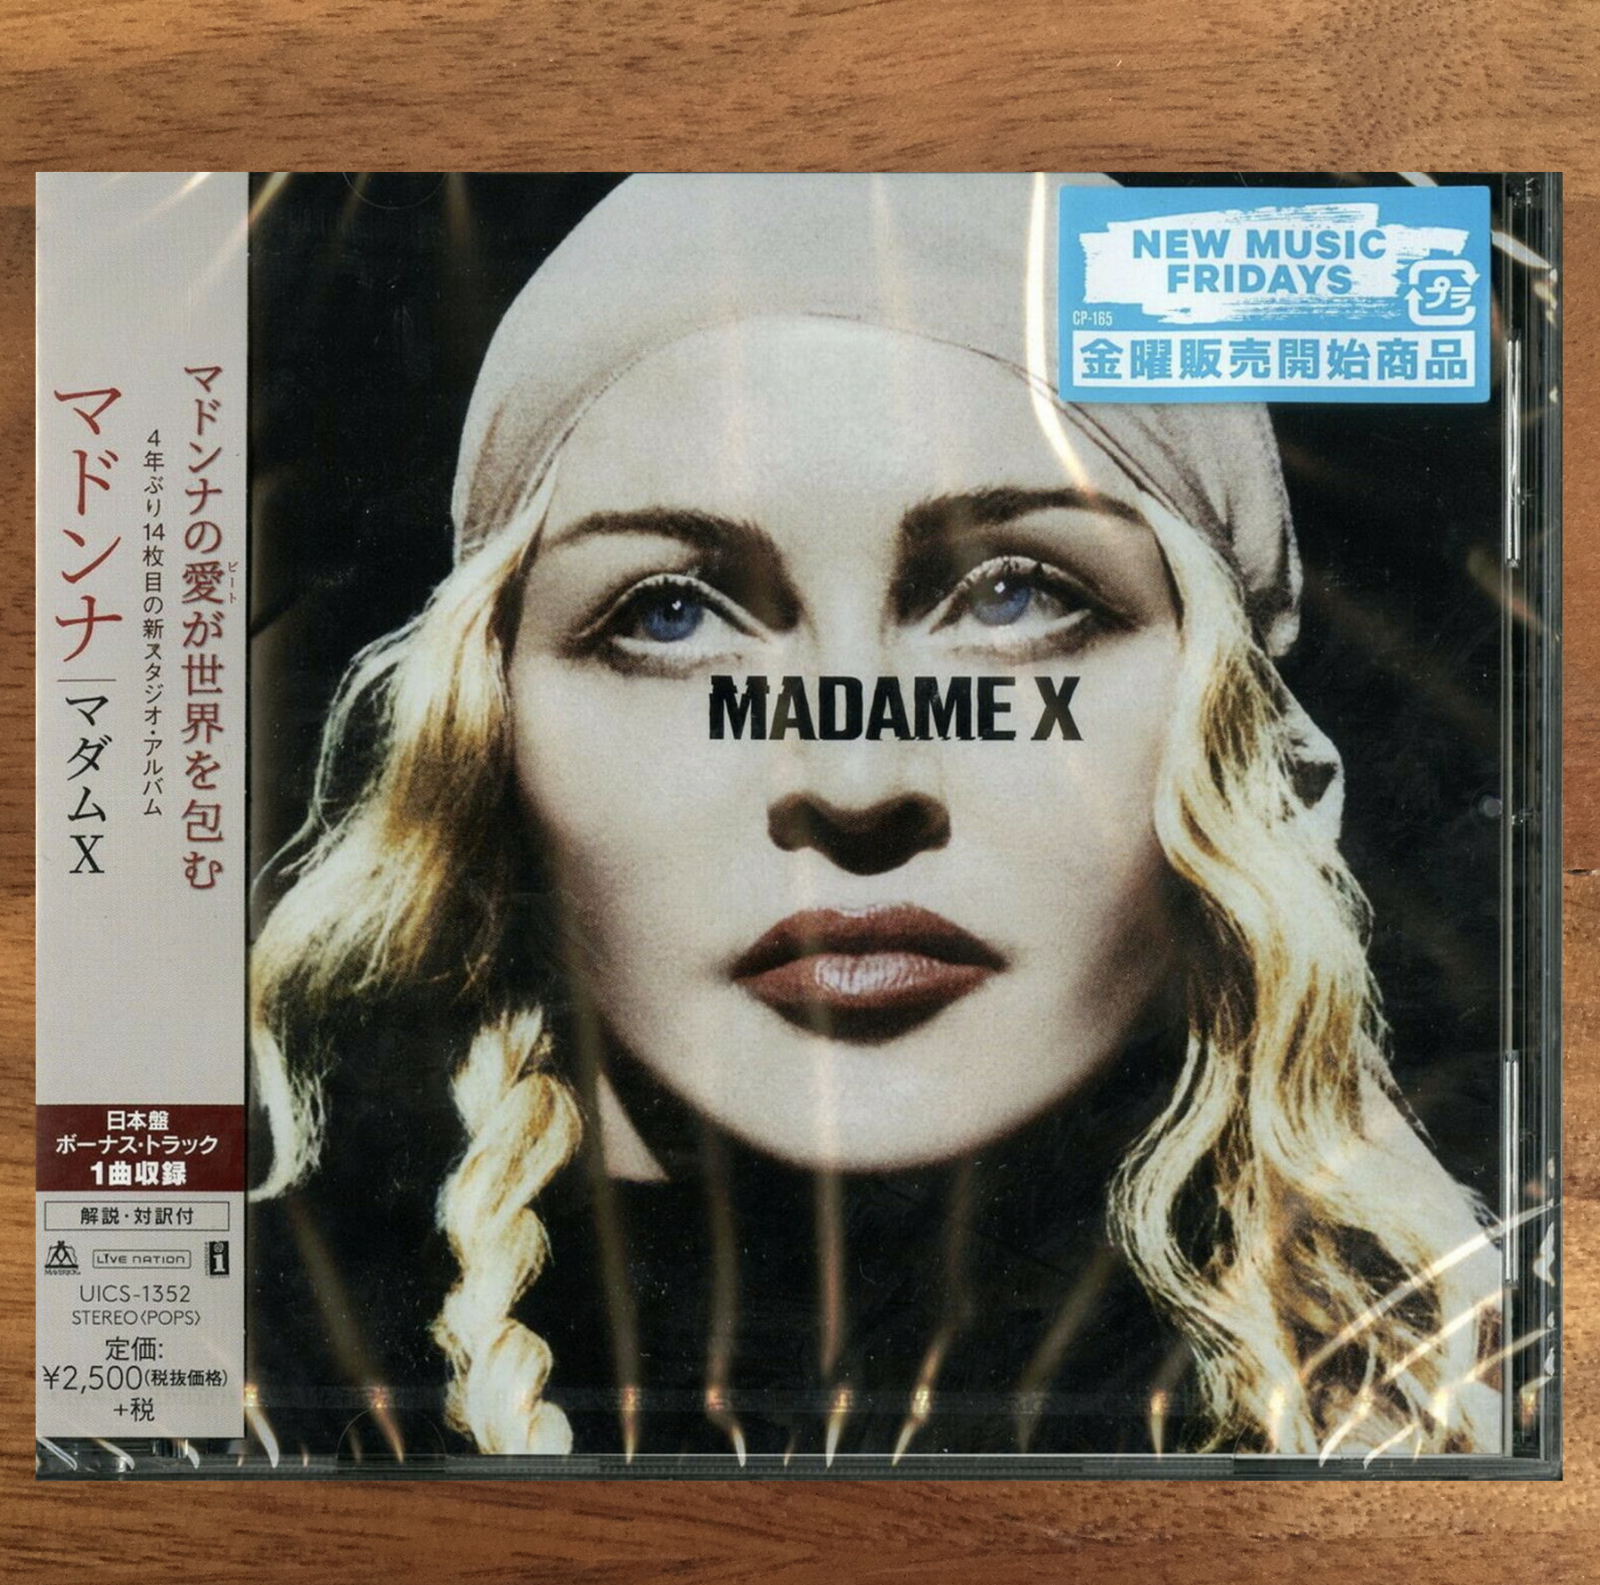 "3x JAPAN BONUS TRACKS + CD WITH OBI SENT FROM BERLIN! MADONNA ""MADAME X"" 2019 2"